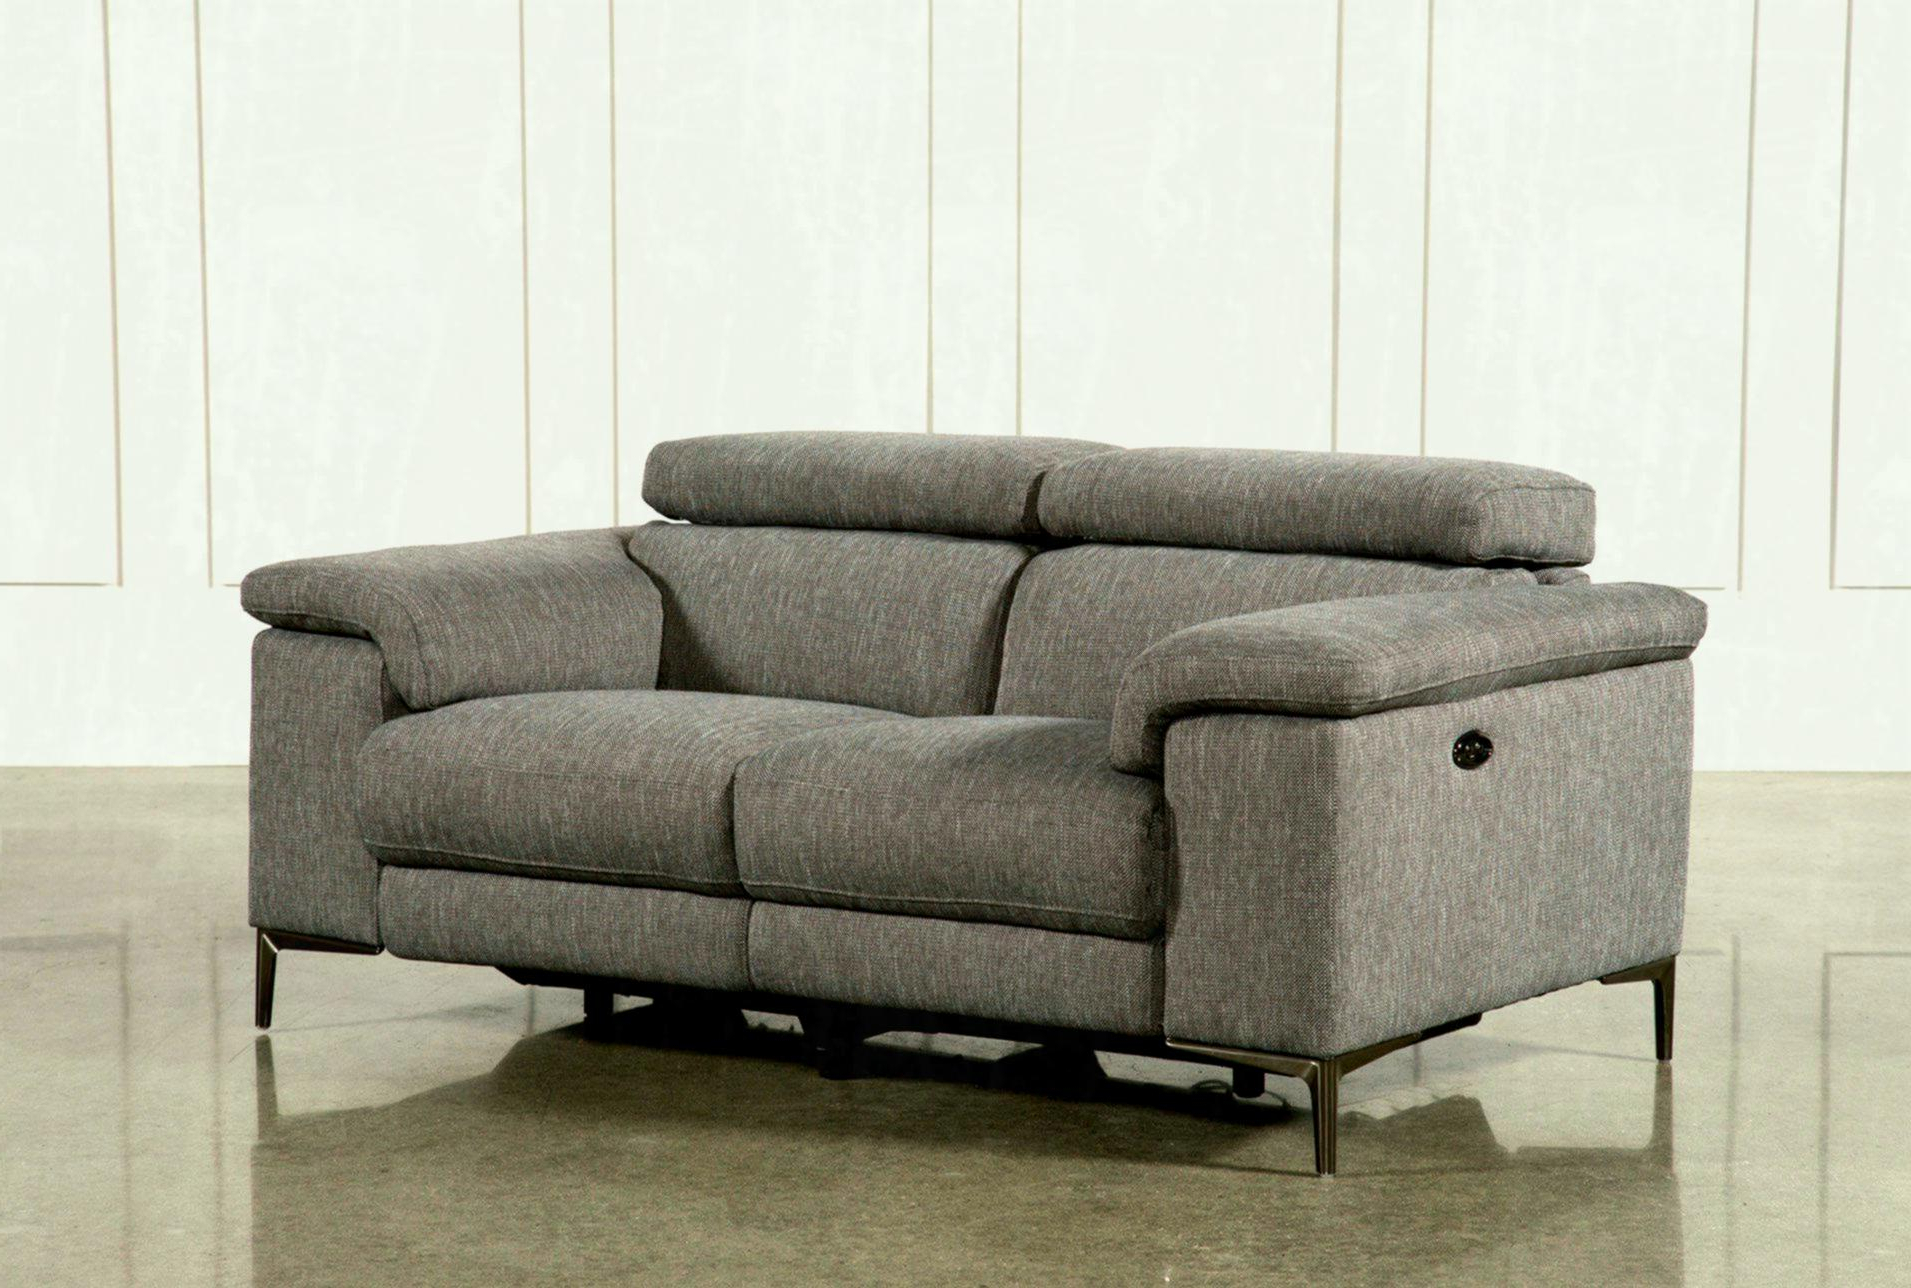 Most Popular Added To Cart Aquarius Light Grey Piece Sectional W Raf Chaise With Regard To Aquarius Dark Grey 2 Piece Sectionals With Raf Chaise (View 10 of 20)